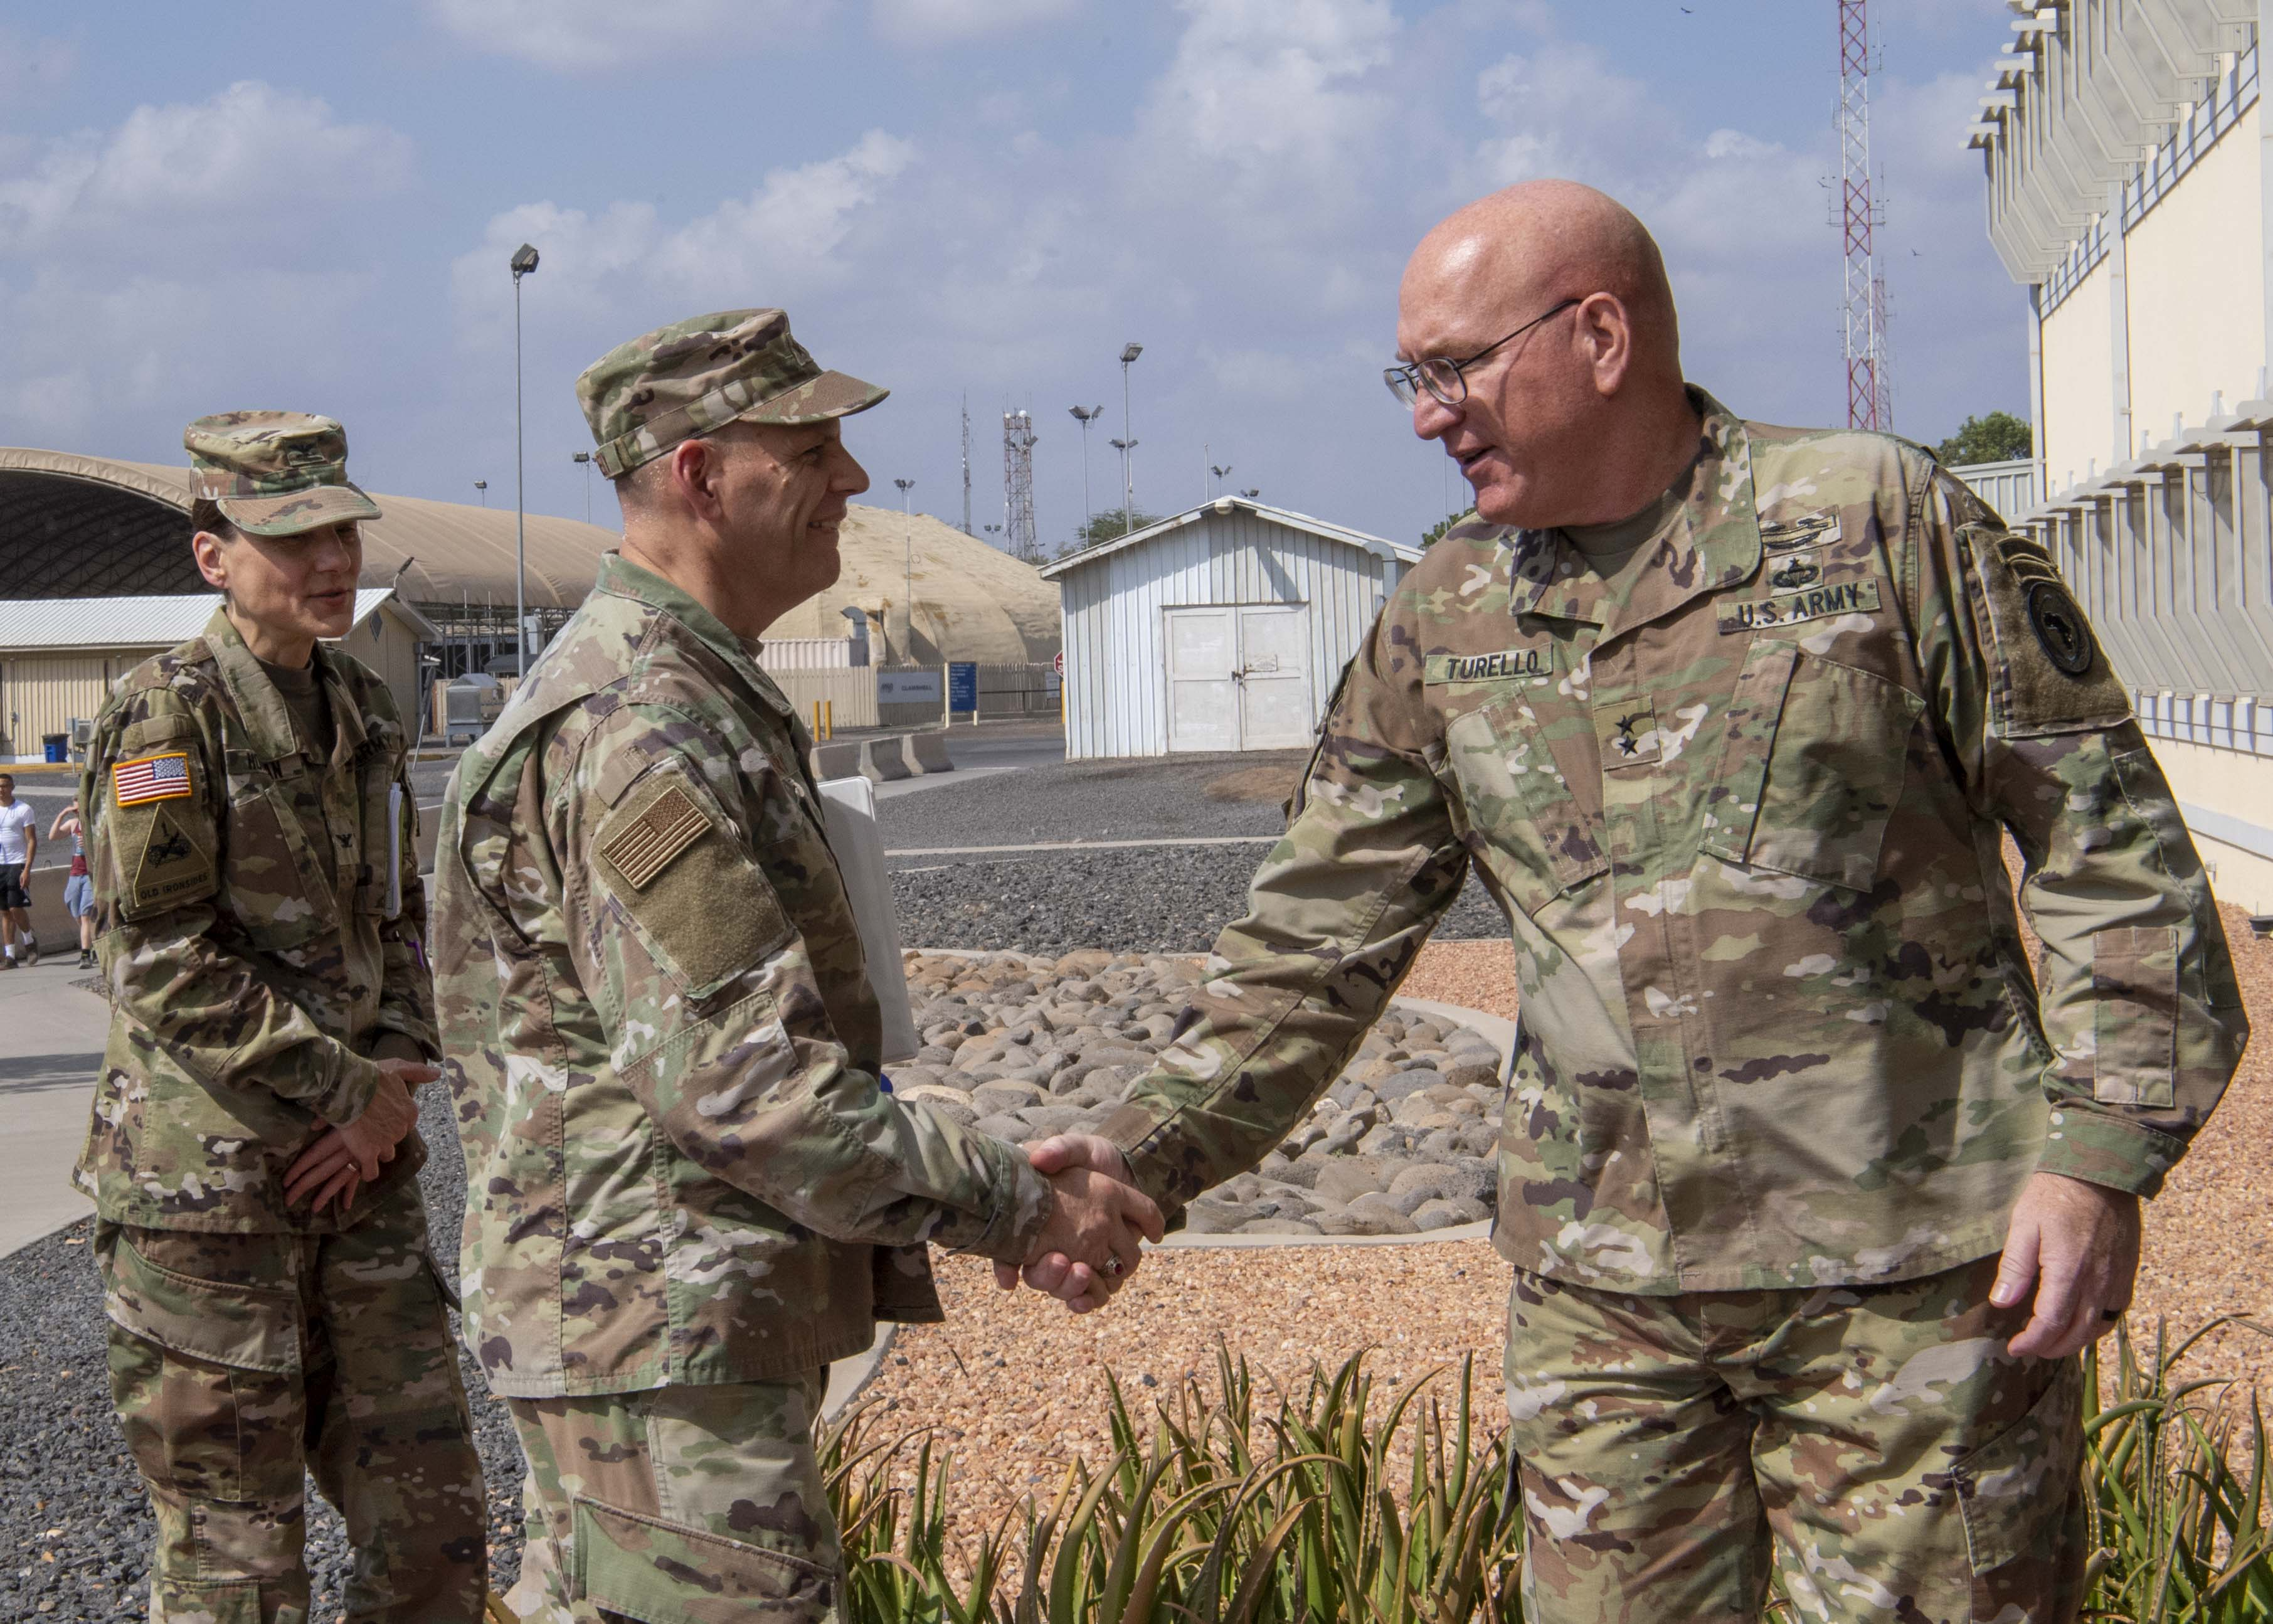 U.S. Army Maj. Gen. Michael Turello, commanding general, Combined Joint Task Force-Horn of Africa (CJTF-HOA) right, greets U.S. Air Force Lt. Gen. James C. Vechery, deputy to the commander for military operations, U.S. Africa Command, at Camp Lemonnier, Djibouti, Nov. 16, 2019. Vechery visited Camp Lemonnier to learn about the CJTF-HOA mission and its contributions to East Africa. (U.S. Air Force photo by Staff Sgt. J.D. Strong II)